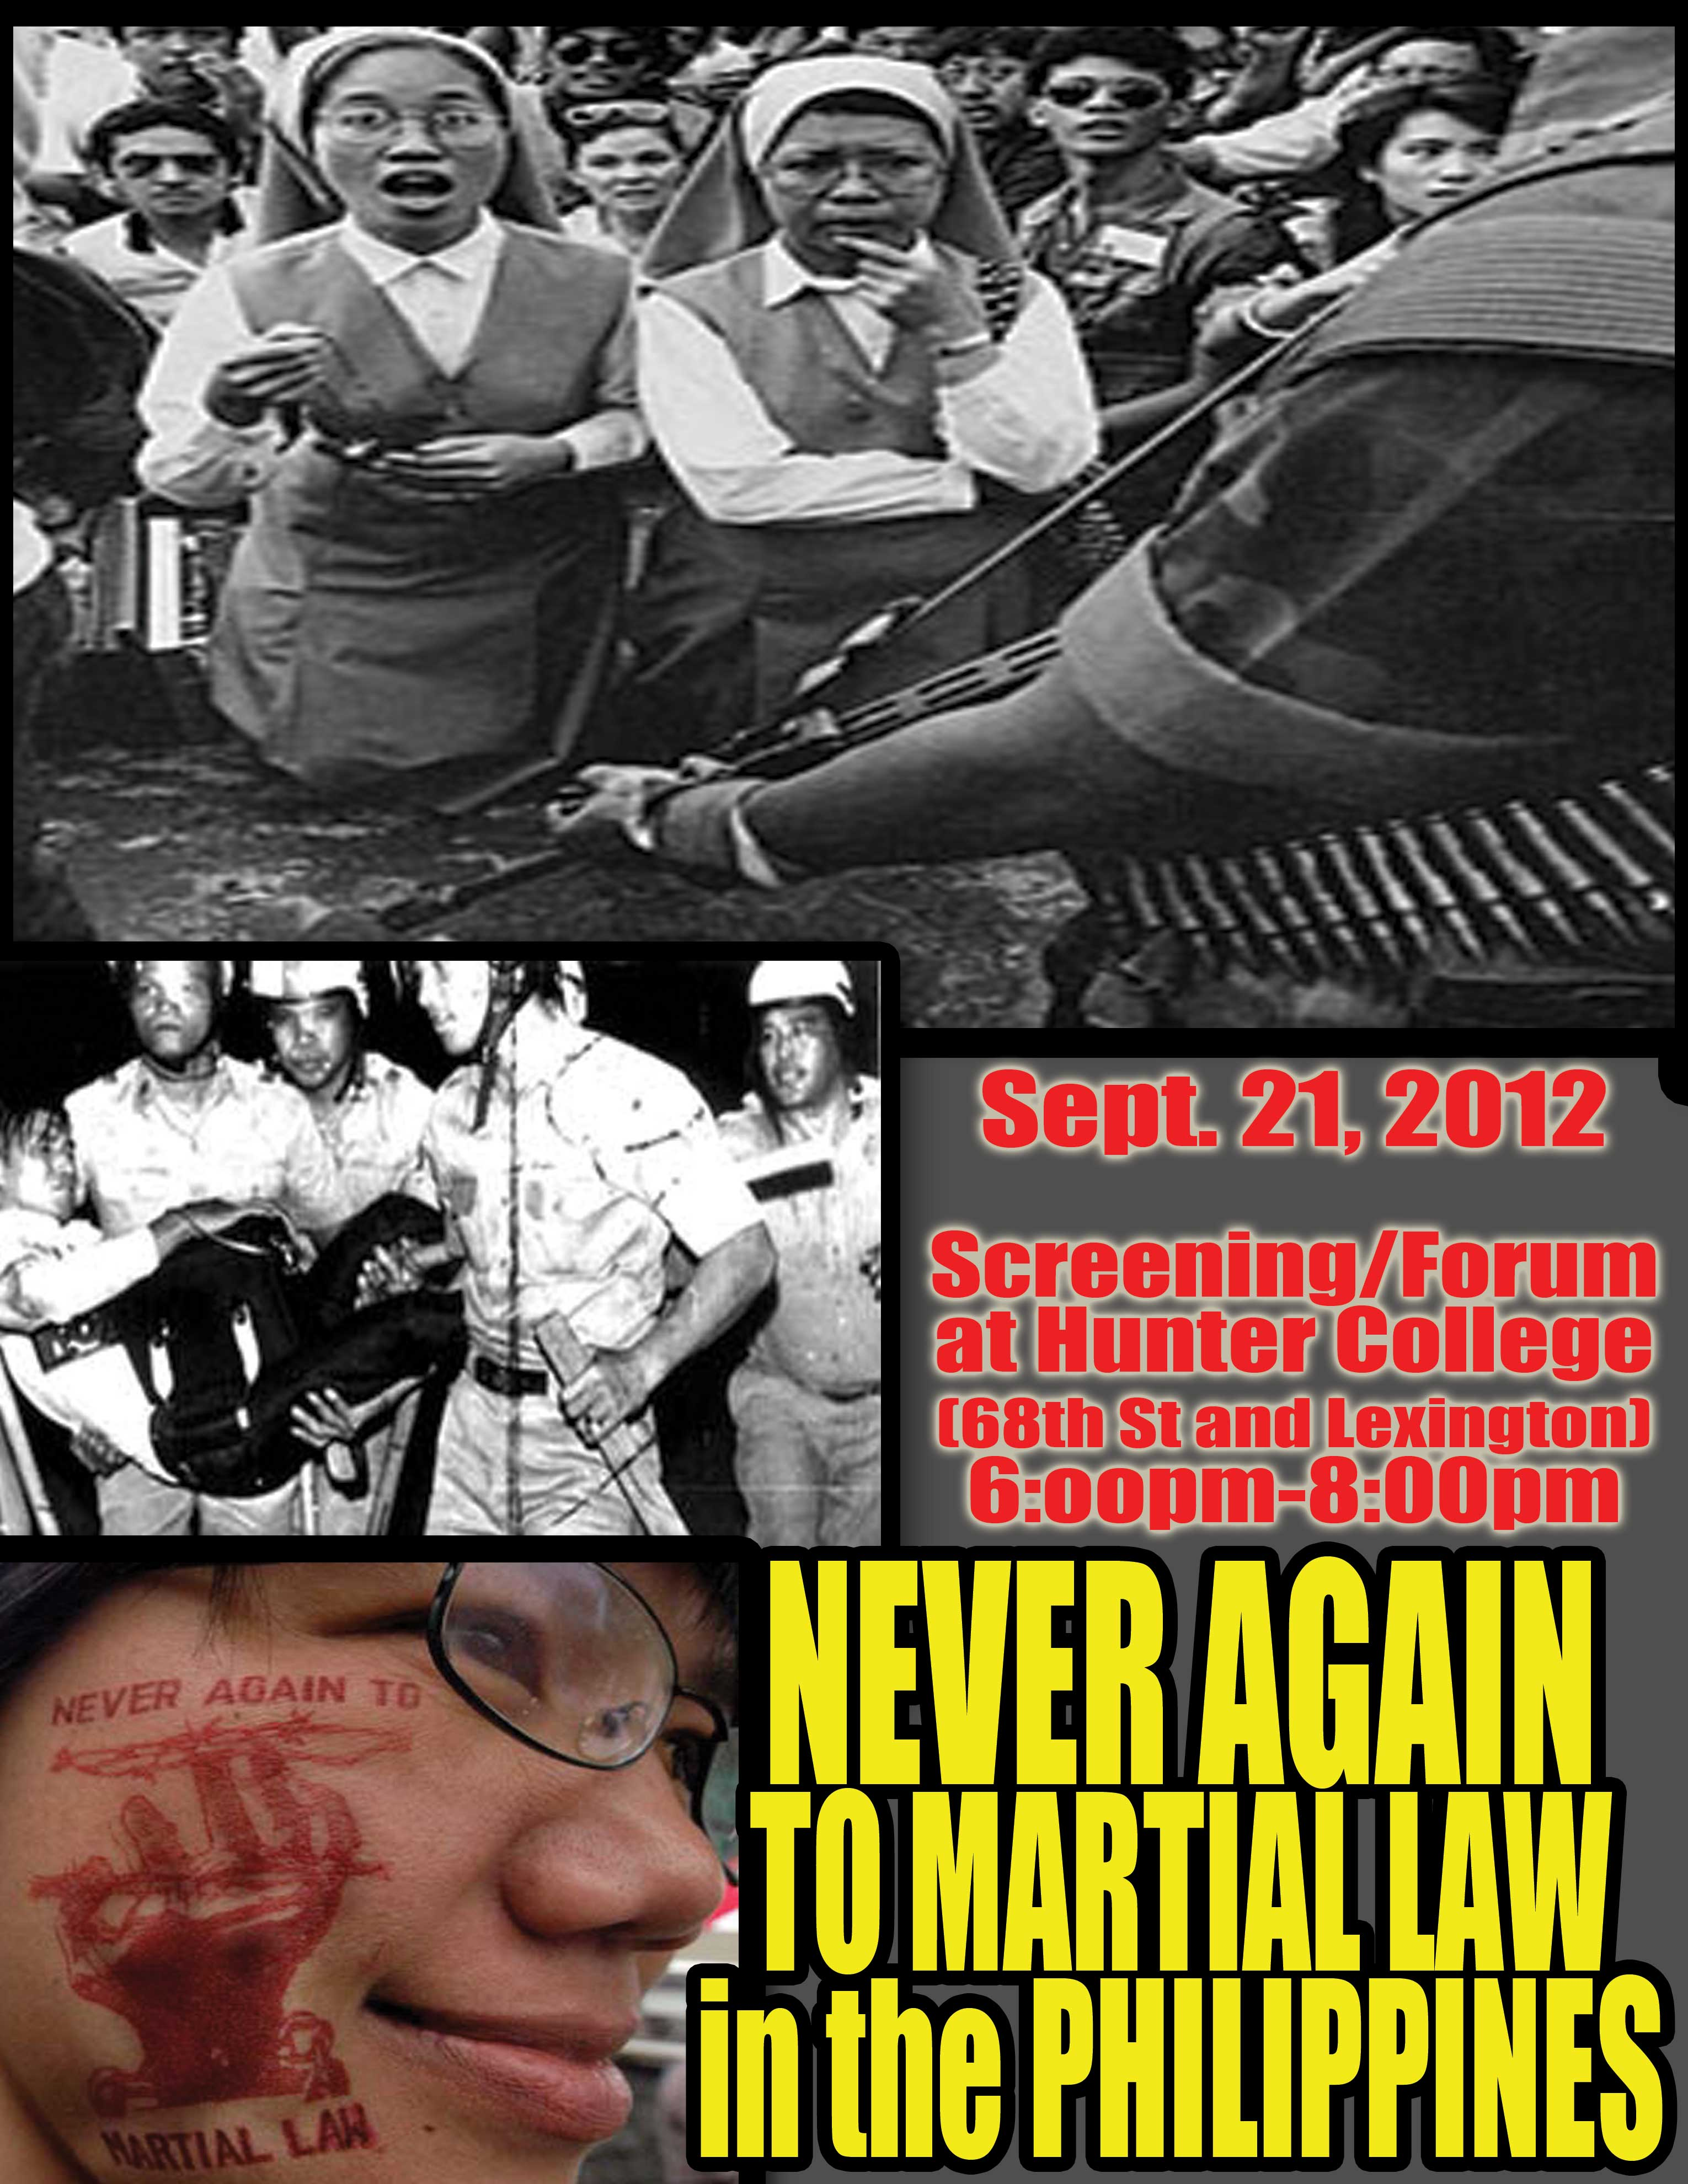 TODAY: Never Again to Martial Law in the Philippines, 40th Anniversary